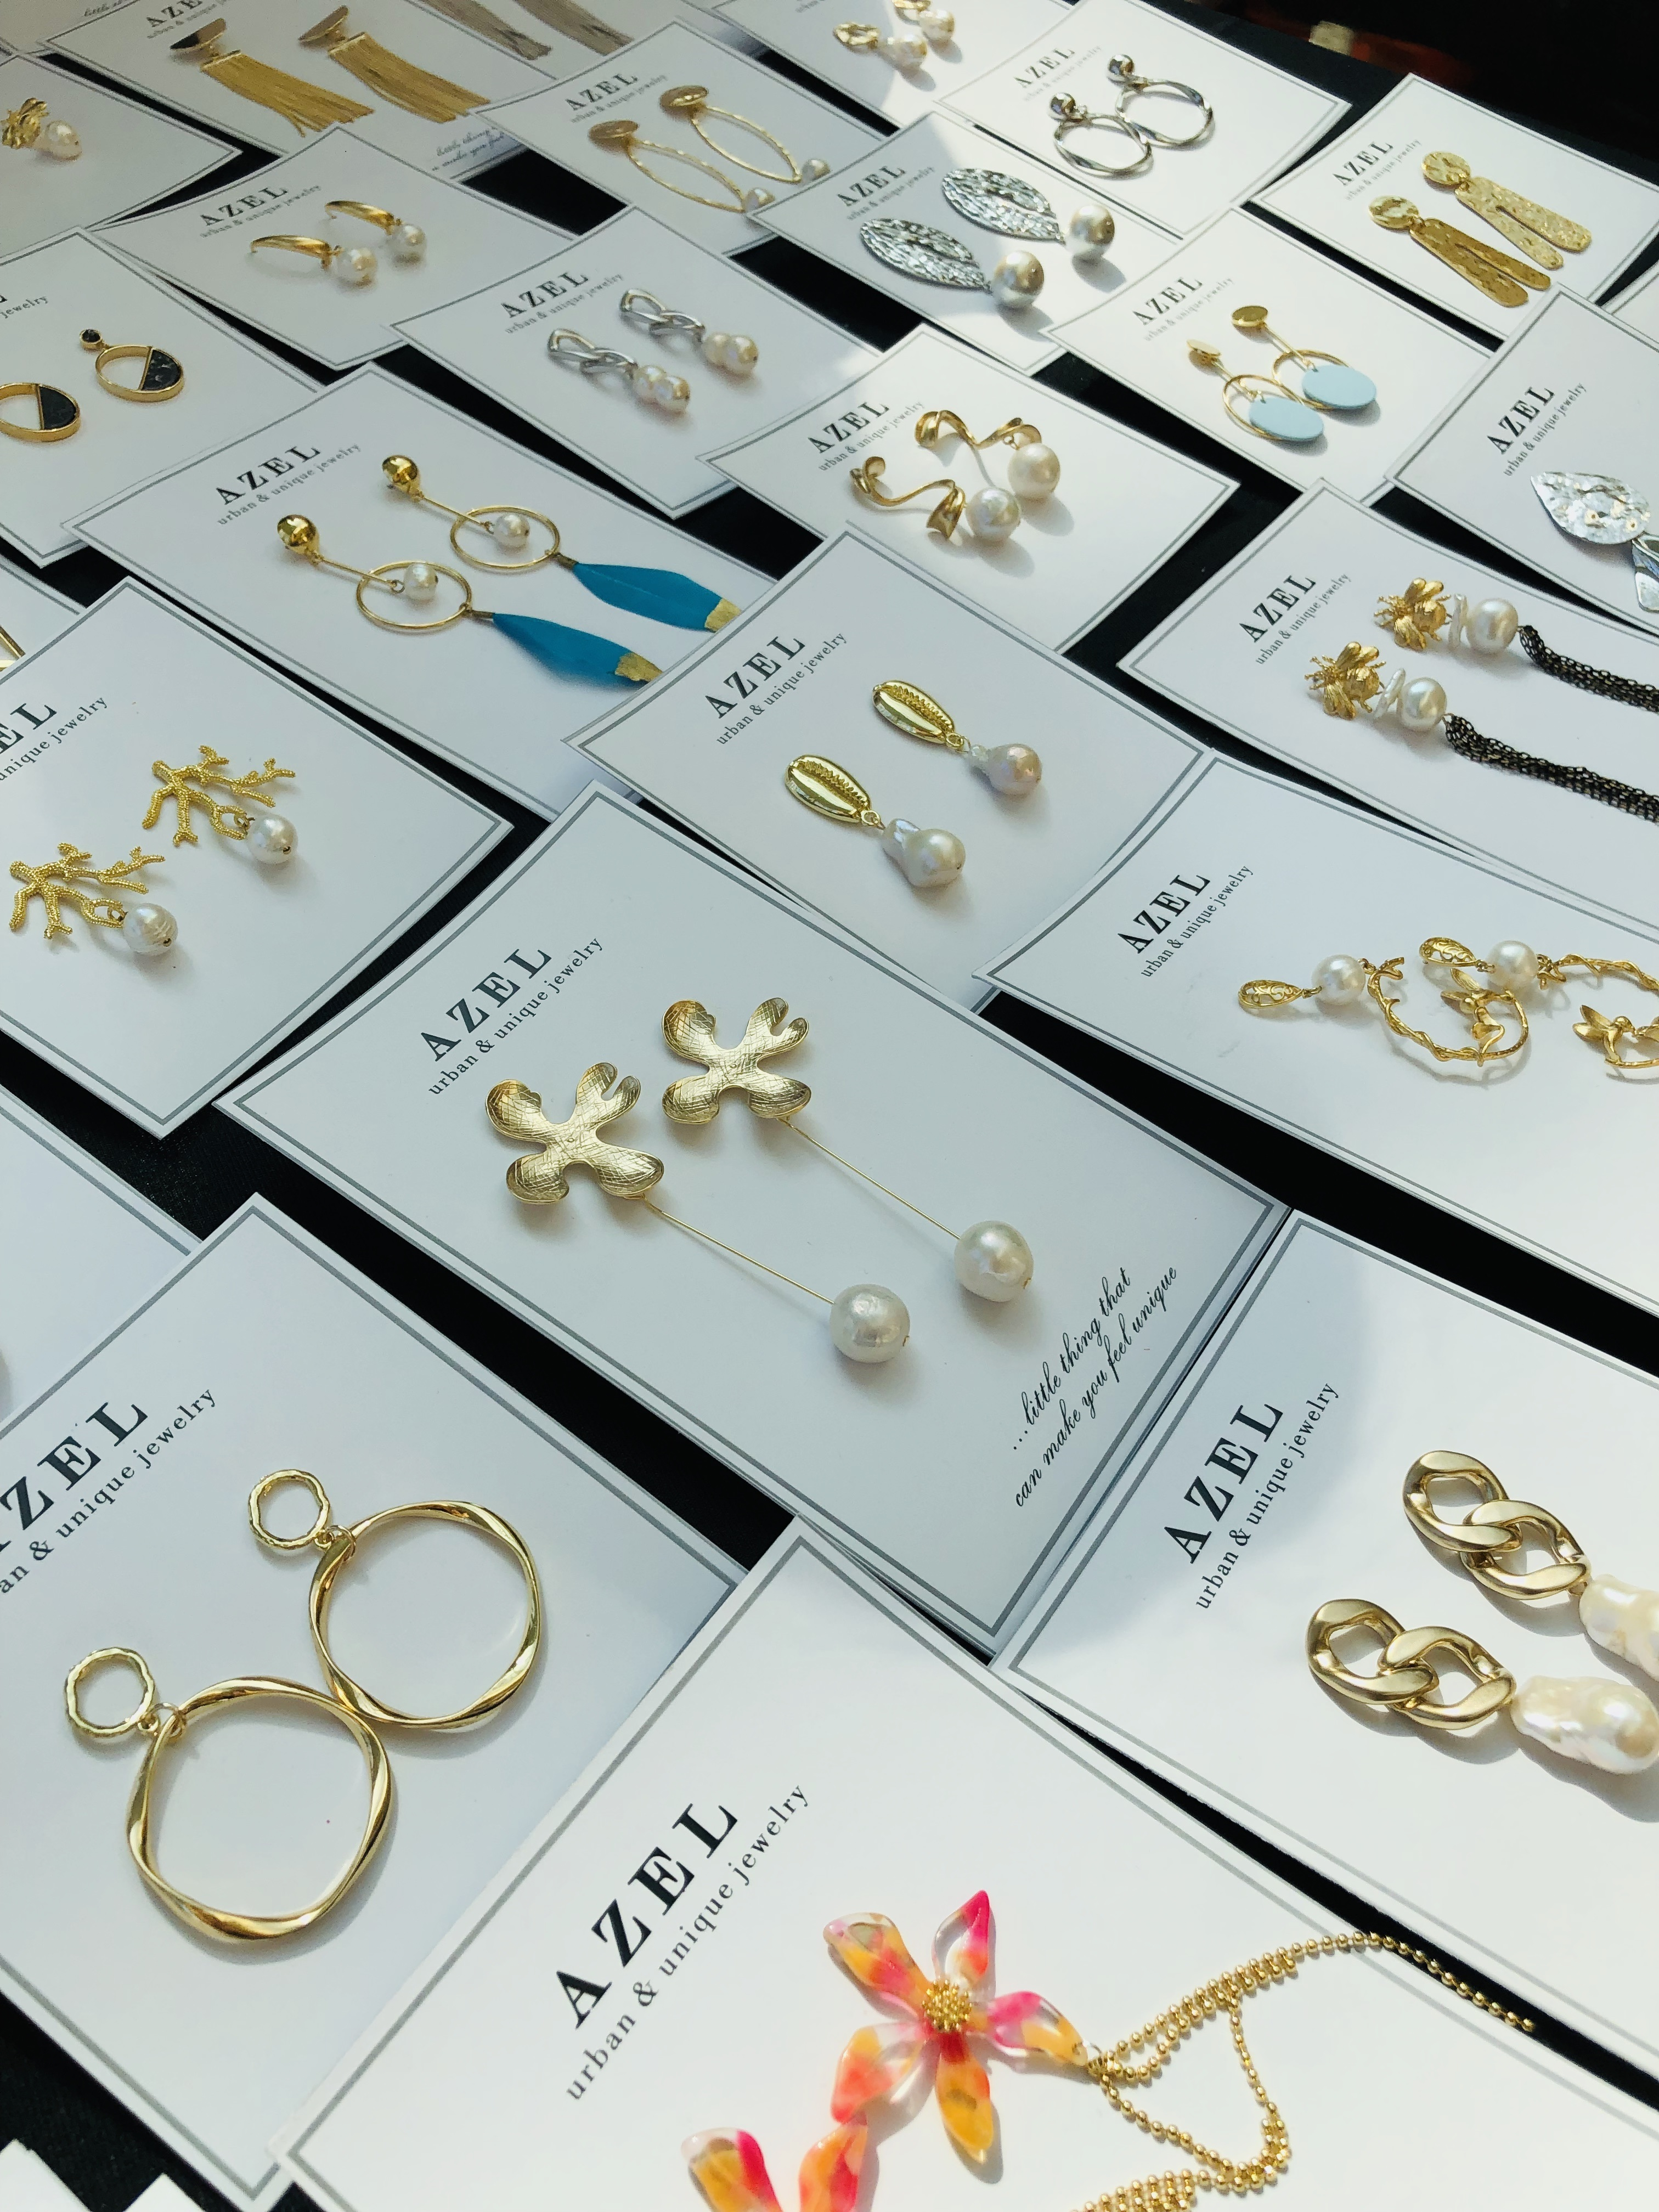 """Kazakh jewellery designers make women feel unique with """"affordable ..."""